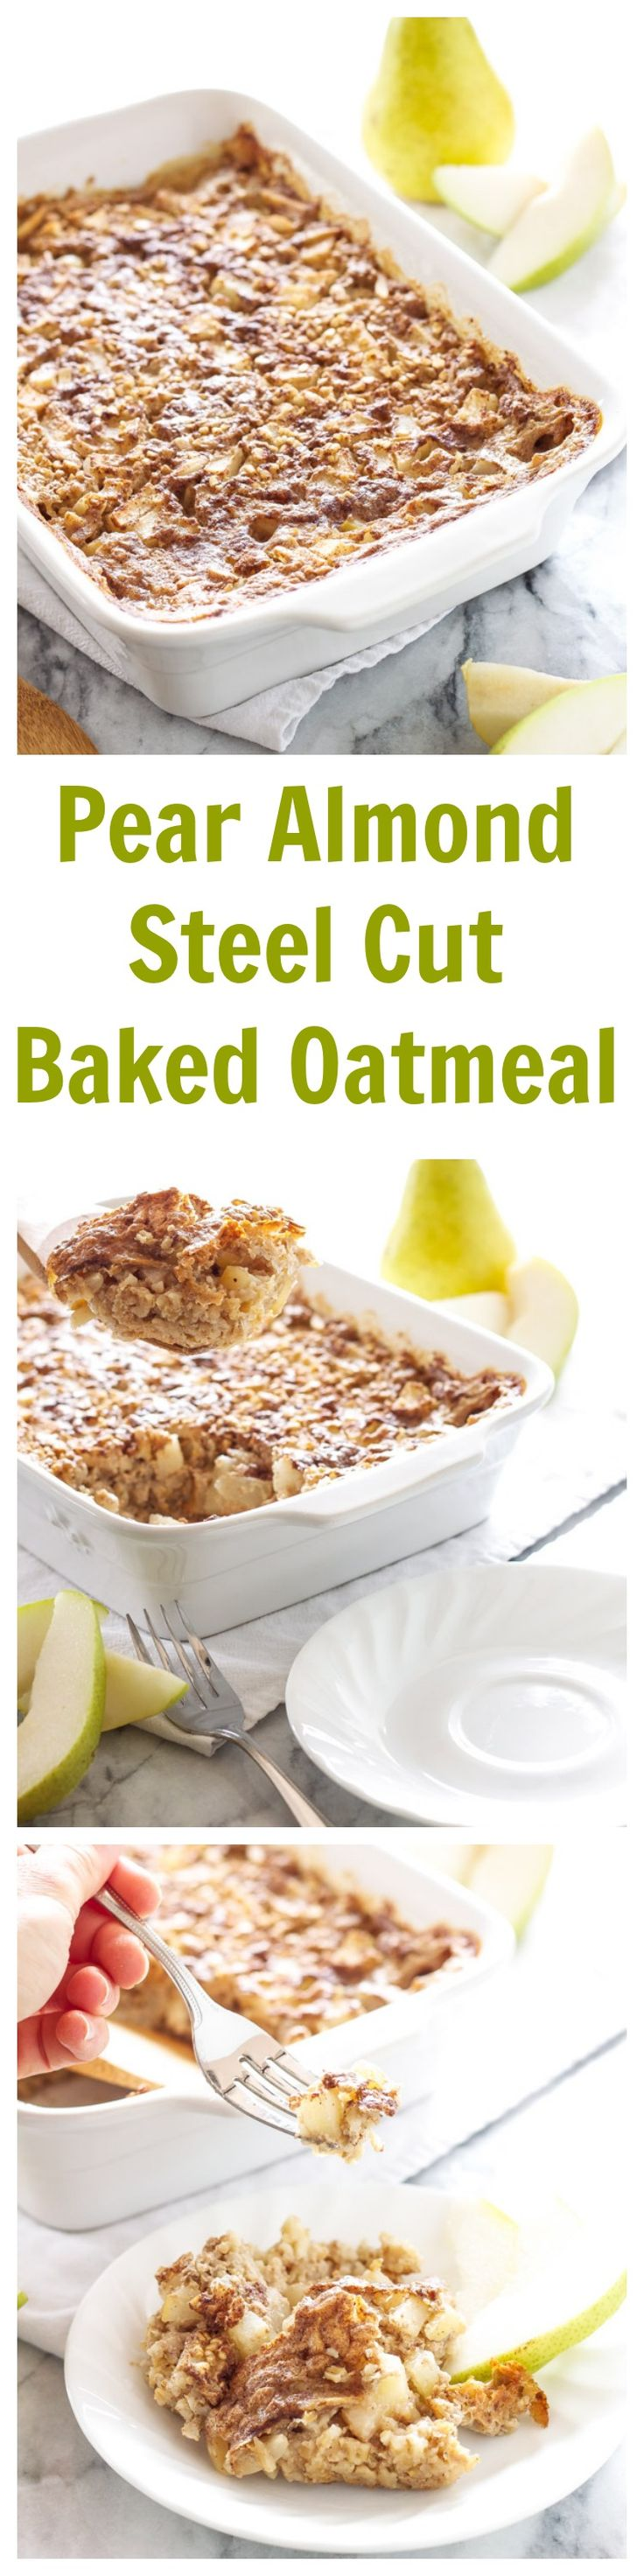 Pear Almond Steel Cut Baked Oatmeal | Recipe Runner | Pears and almonds are the perfect combination in this comforting baked oatmeal!